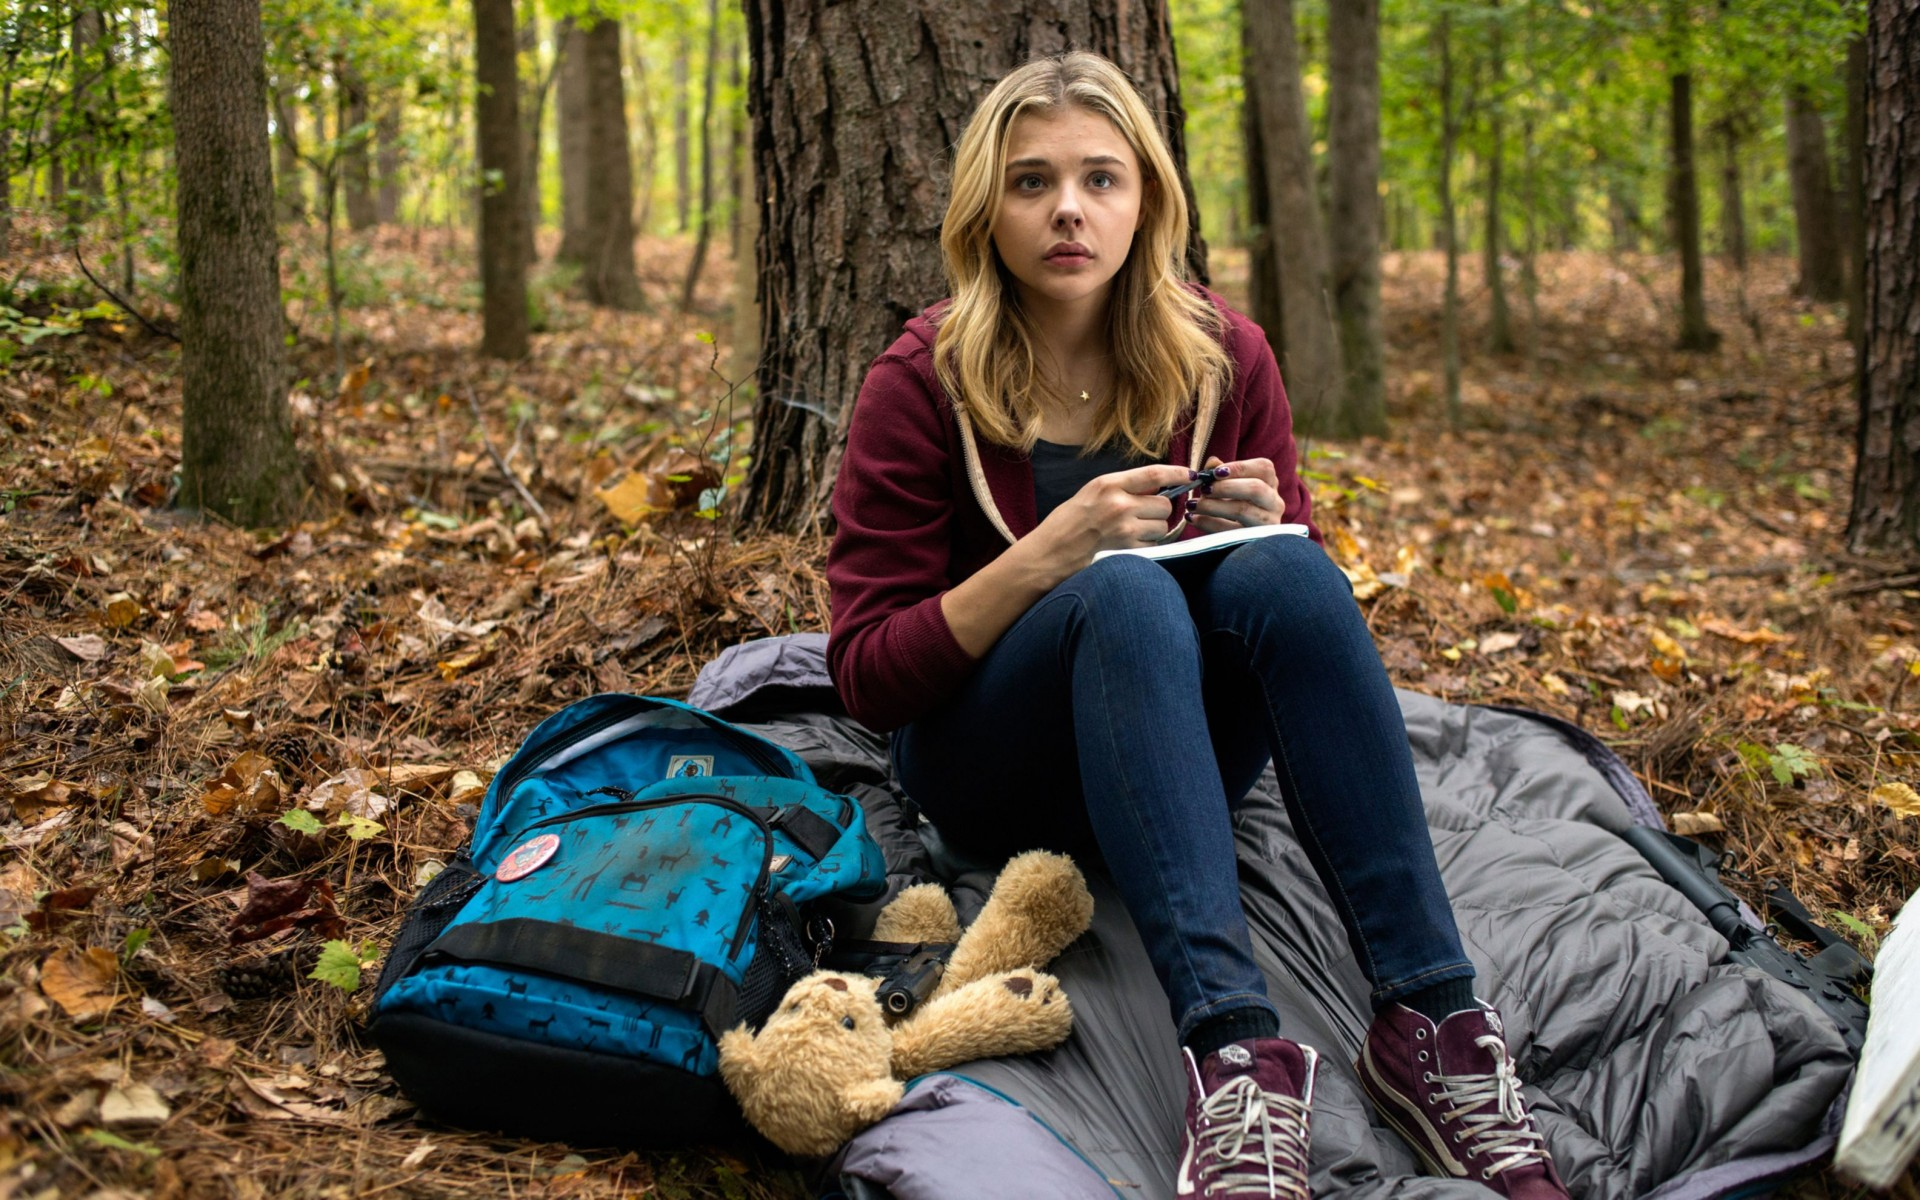 The 5th Wave Chloe Moretz Wide Wallpaper